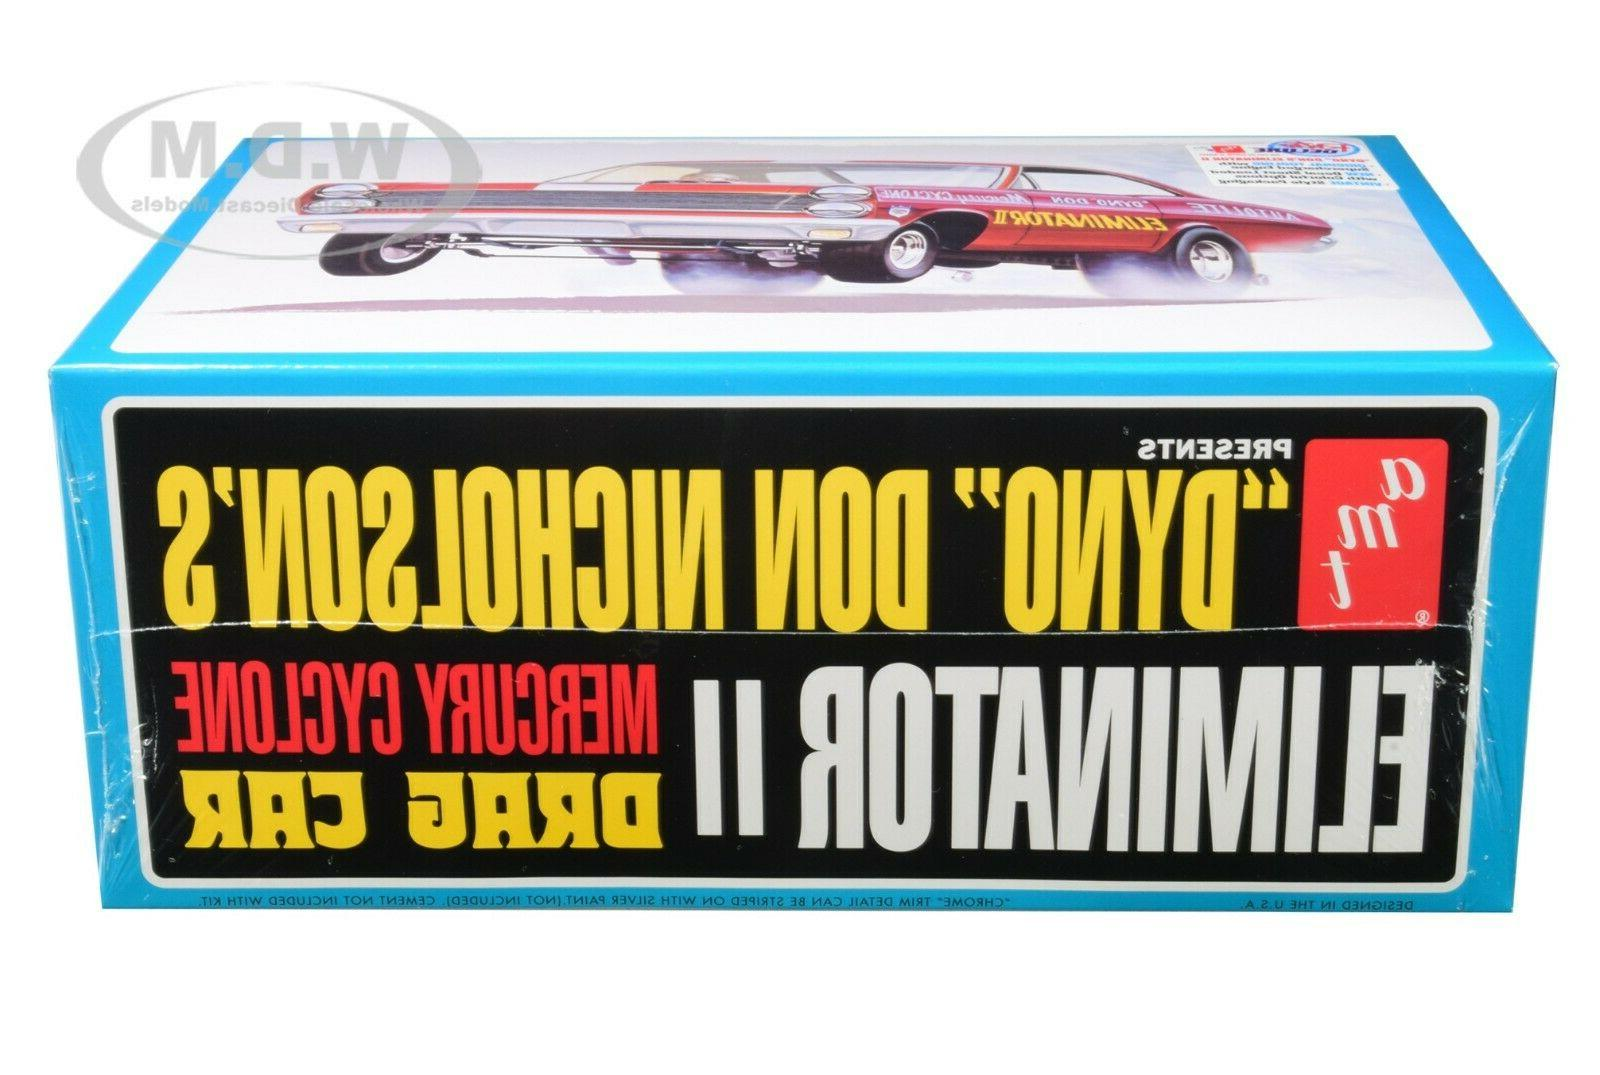 SKILL MODEL MERCURY CYCLONE DRAG CAR II AMT